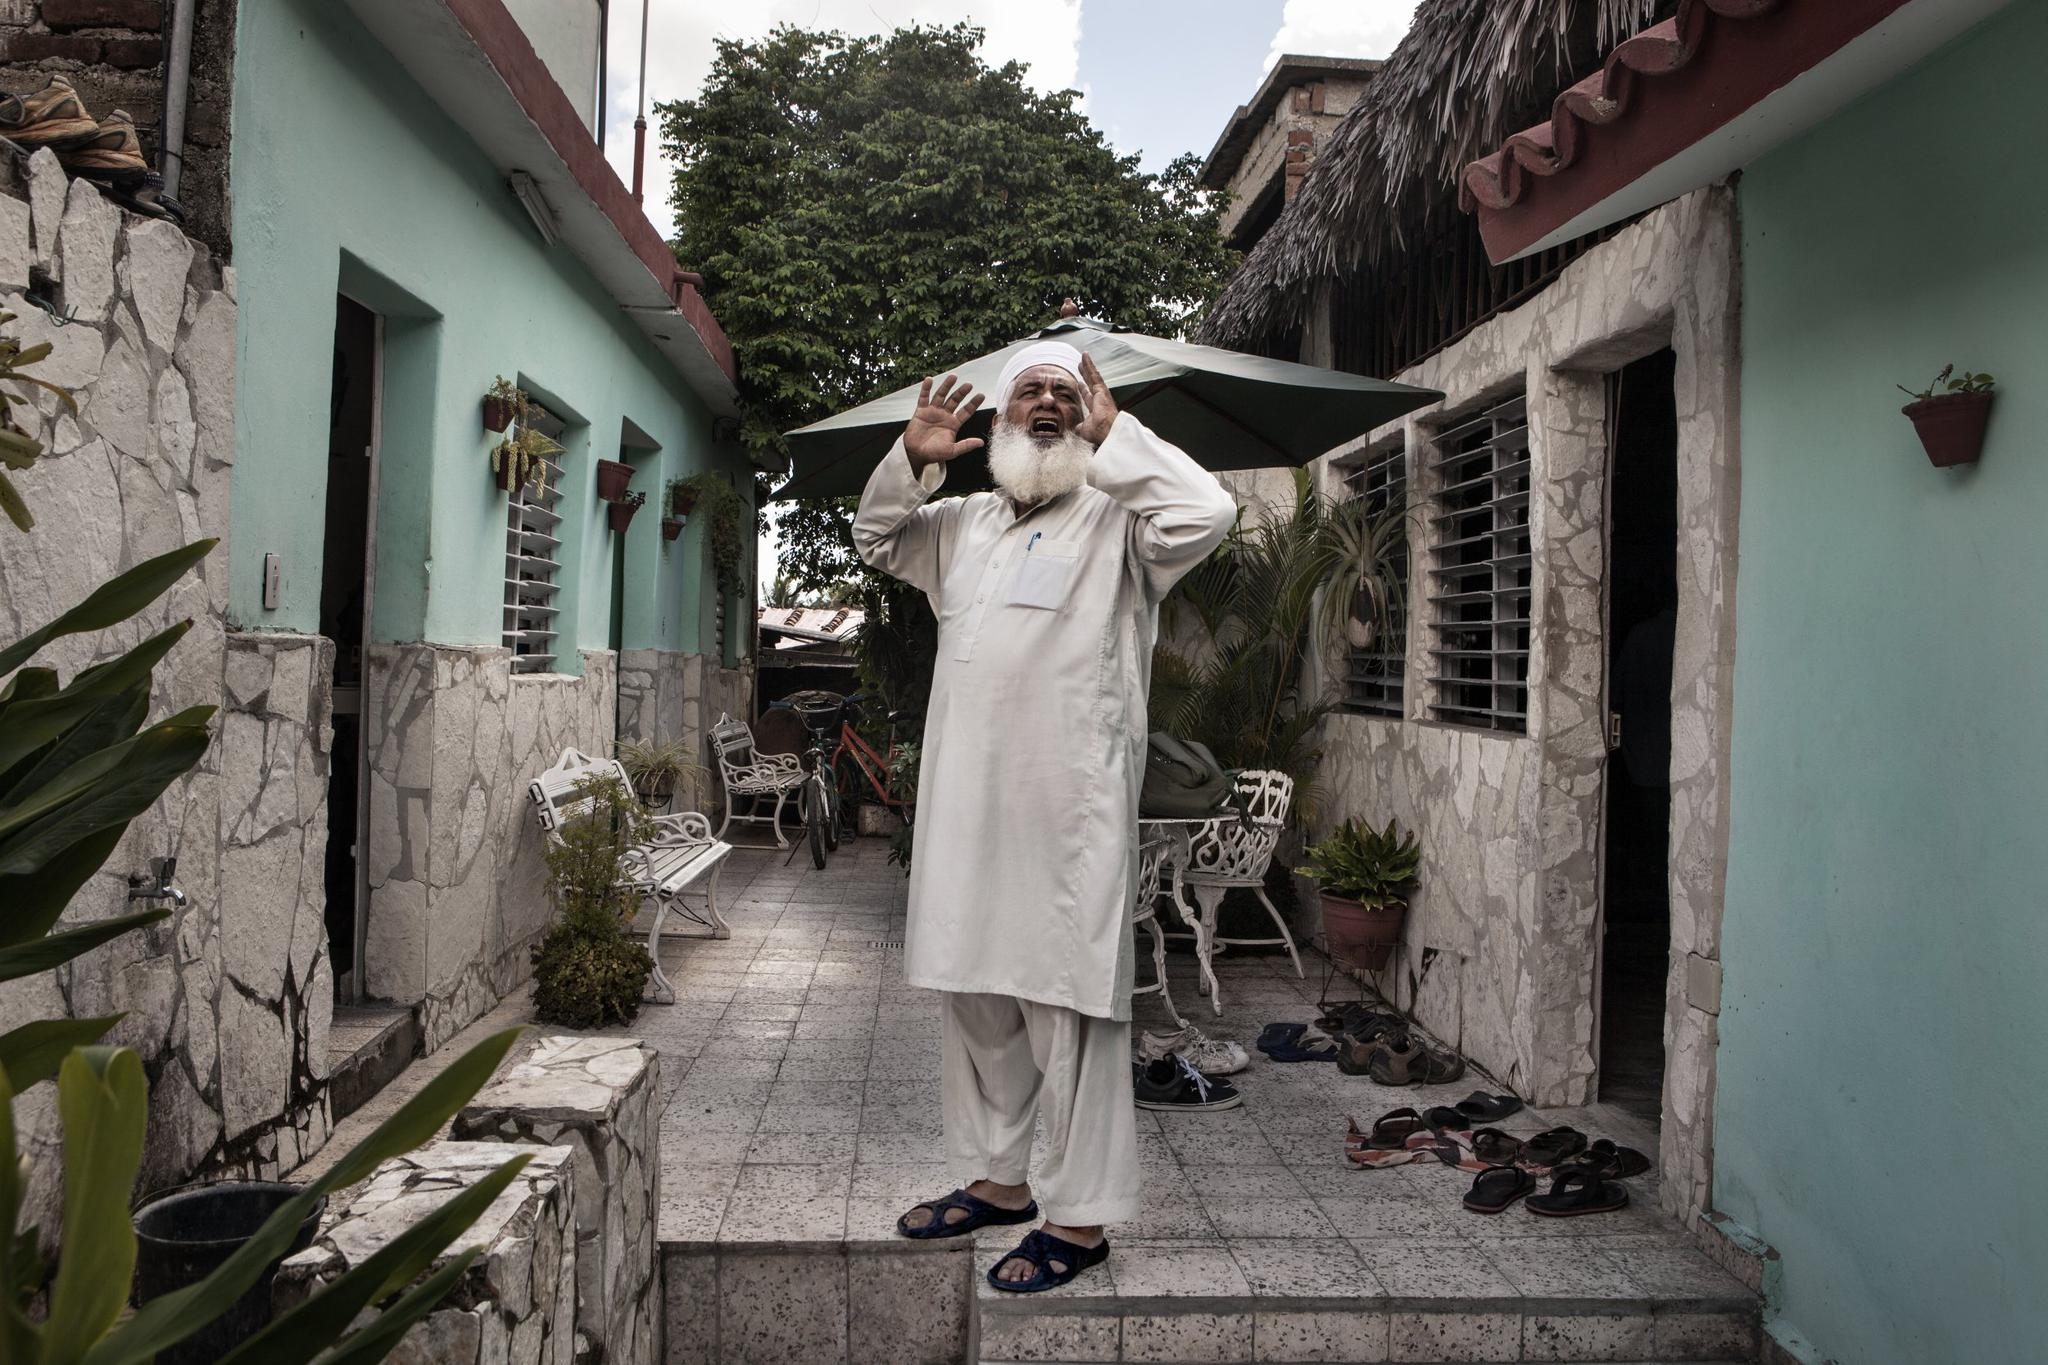 Juan Enriquez, 70, became known by his Muslim name, Yahya, after he converted to Islam in 2007. Here, he calls to Friday's prayer in the mosque of Camagüey, which was built inside a private home to avoid problems with the Cuban authorities.